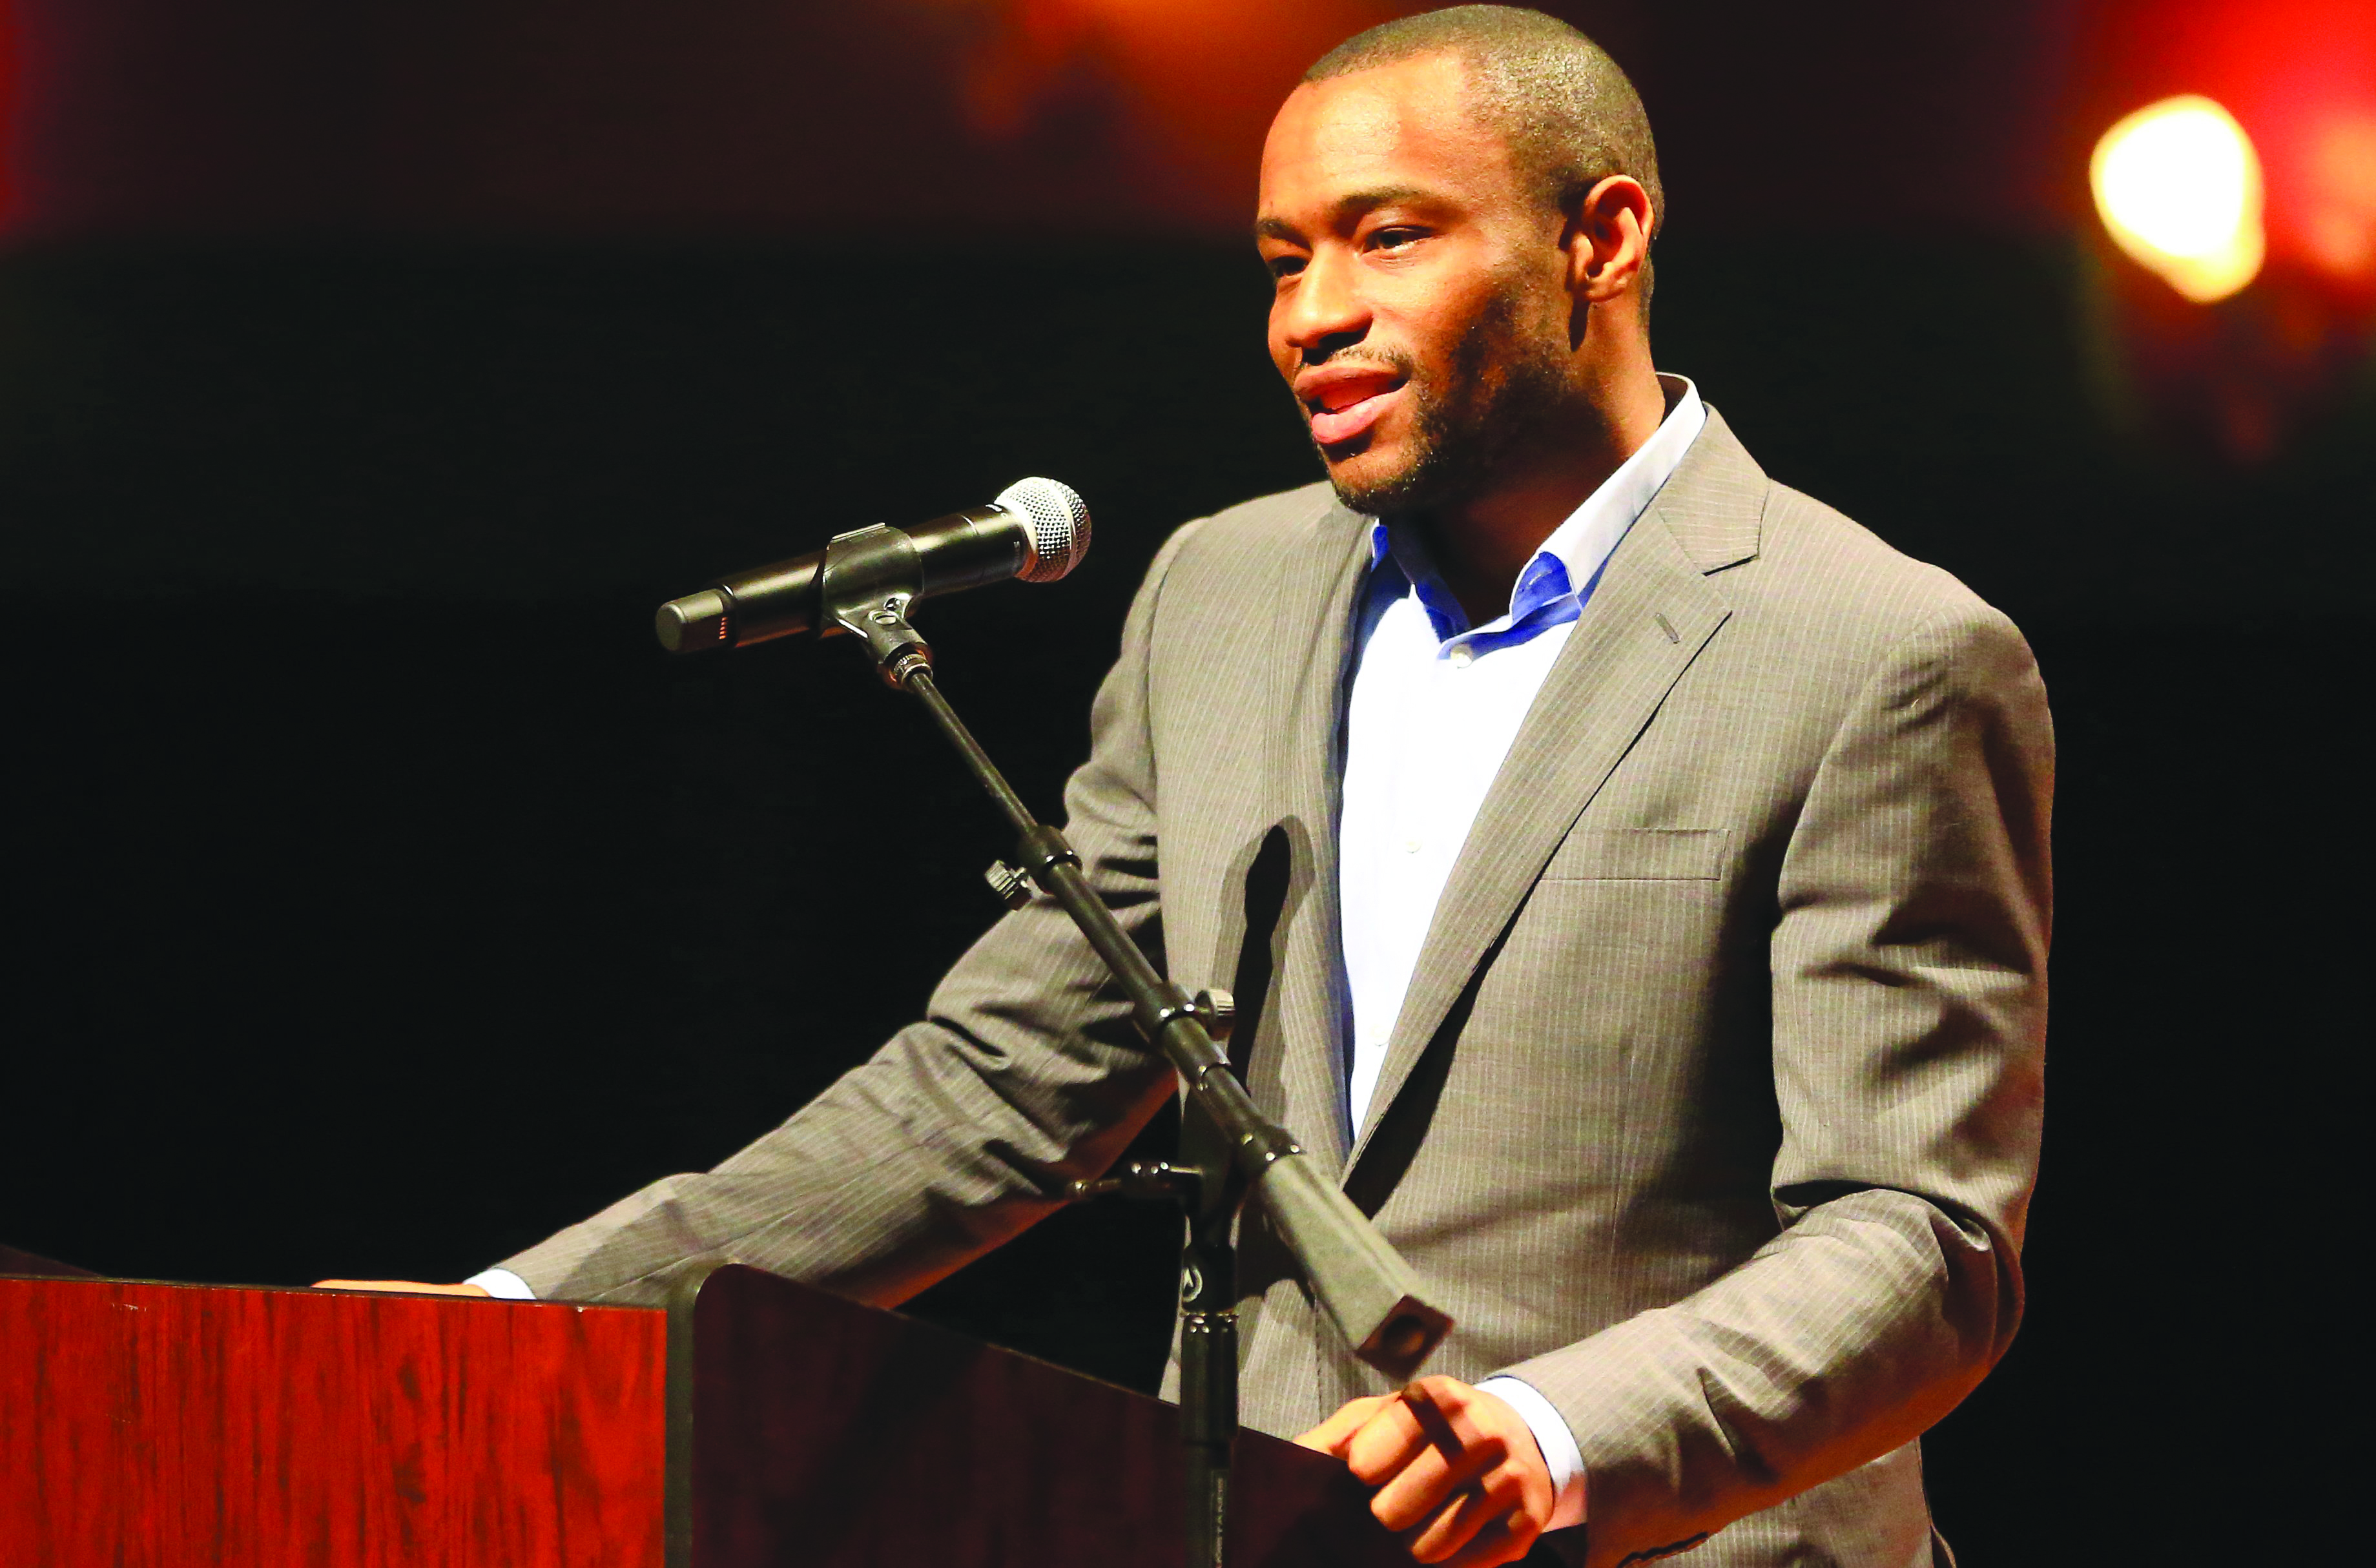 GABE HERNANDEZ/CALLER-TIMES Dr. Marc Lamont Hill speaks during the 4th Annual Dr. Martin Luther King, Jr. Community Celebration Wednesday, Jan. 26, 2016, at Texas A&M University-Corpus Christi in Corpus Christi.